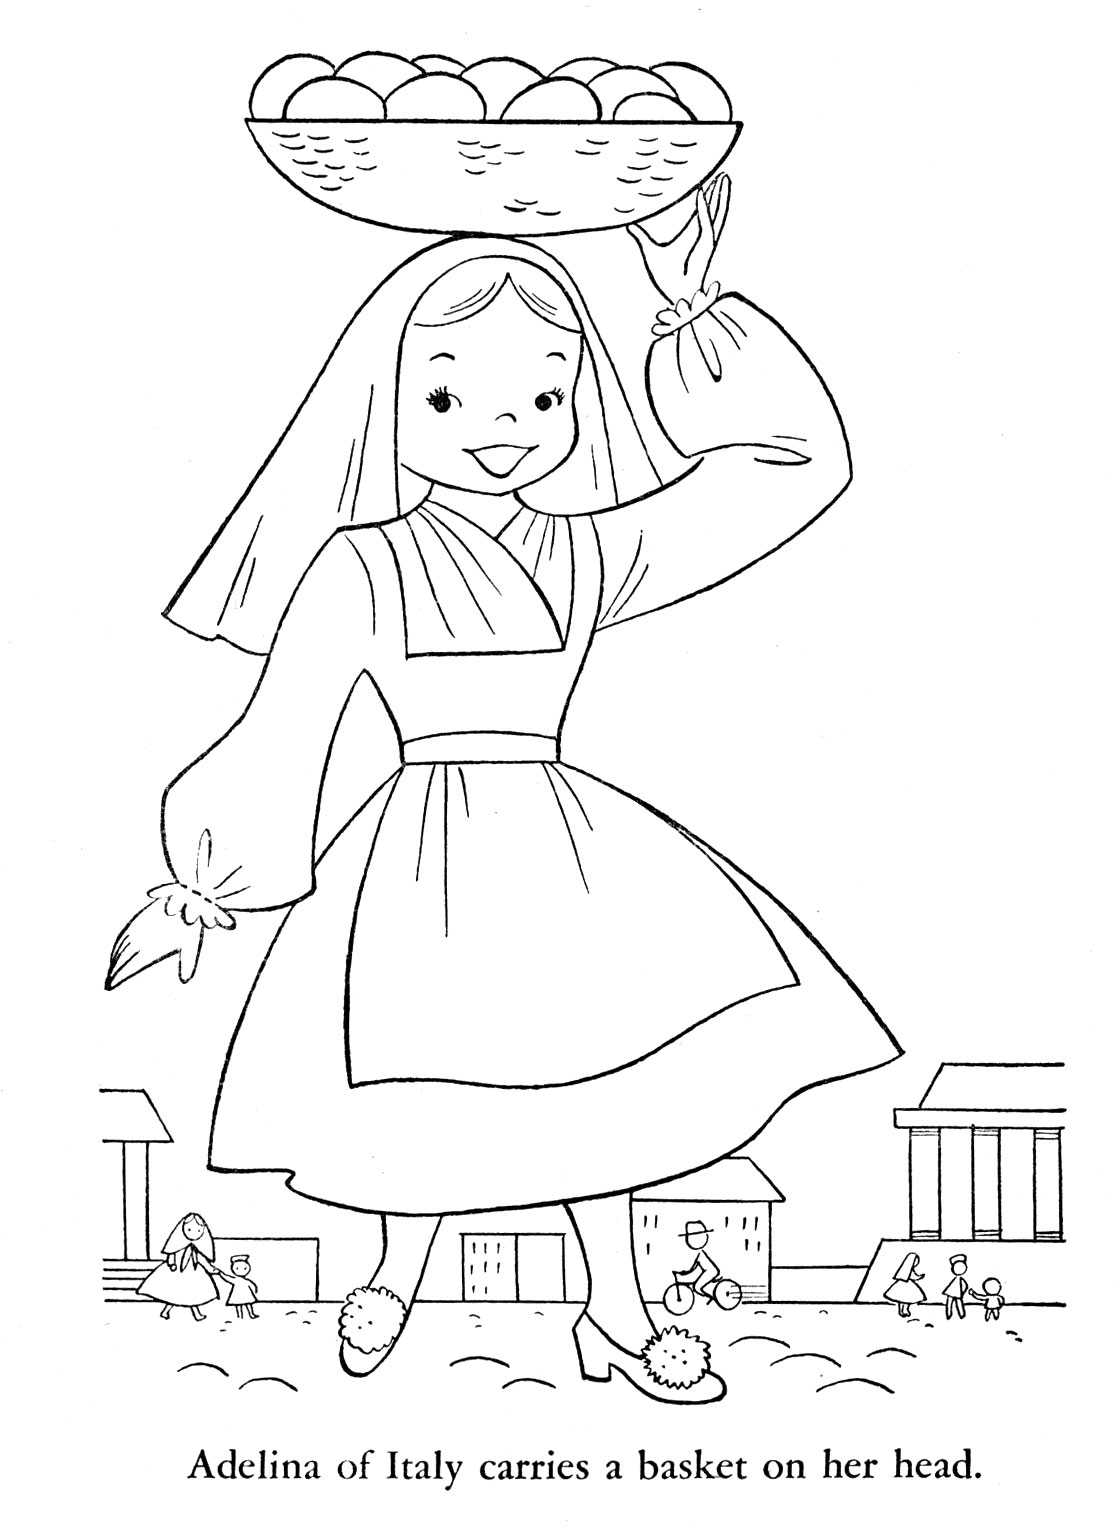 denmark coloring pages - photo#15